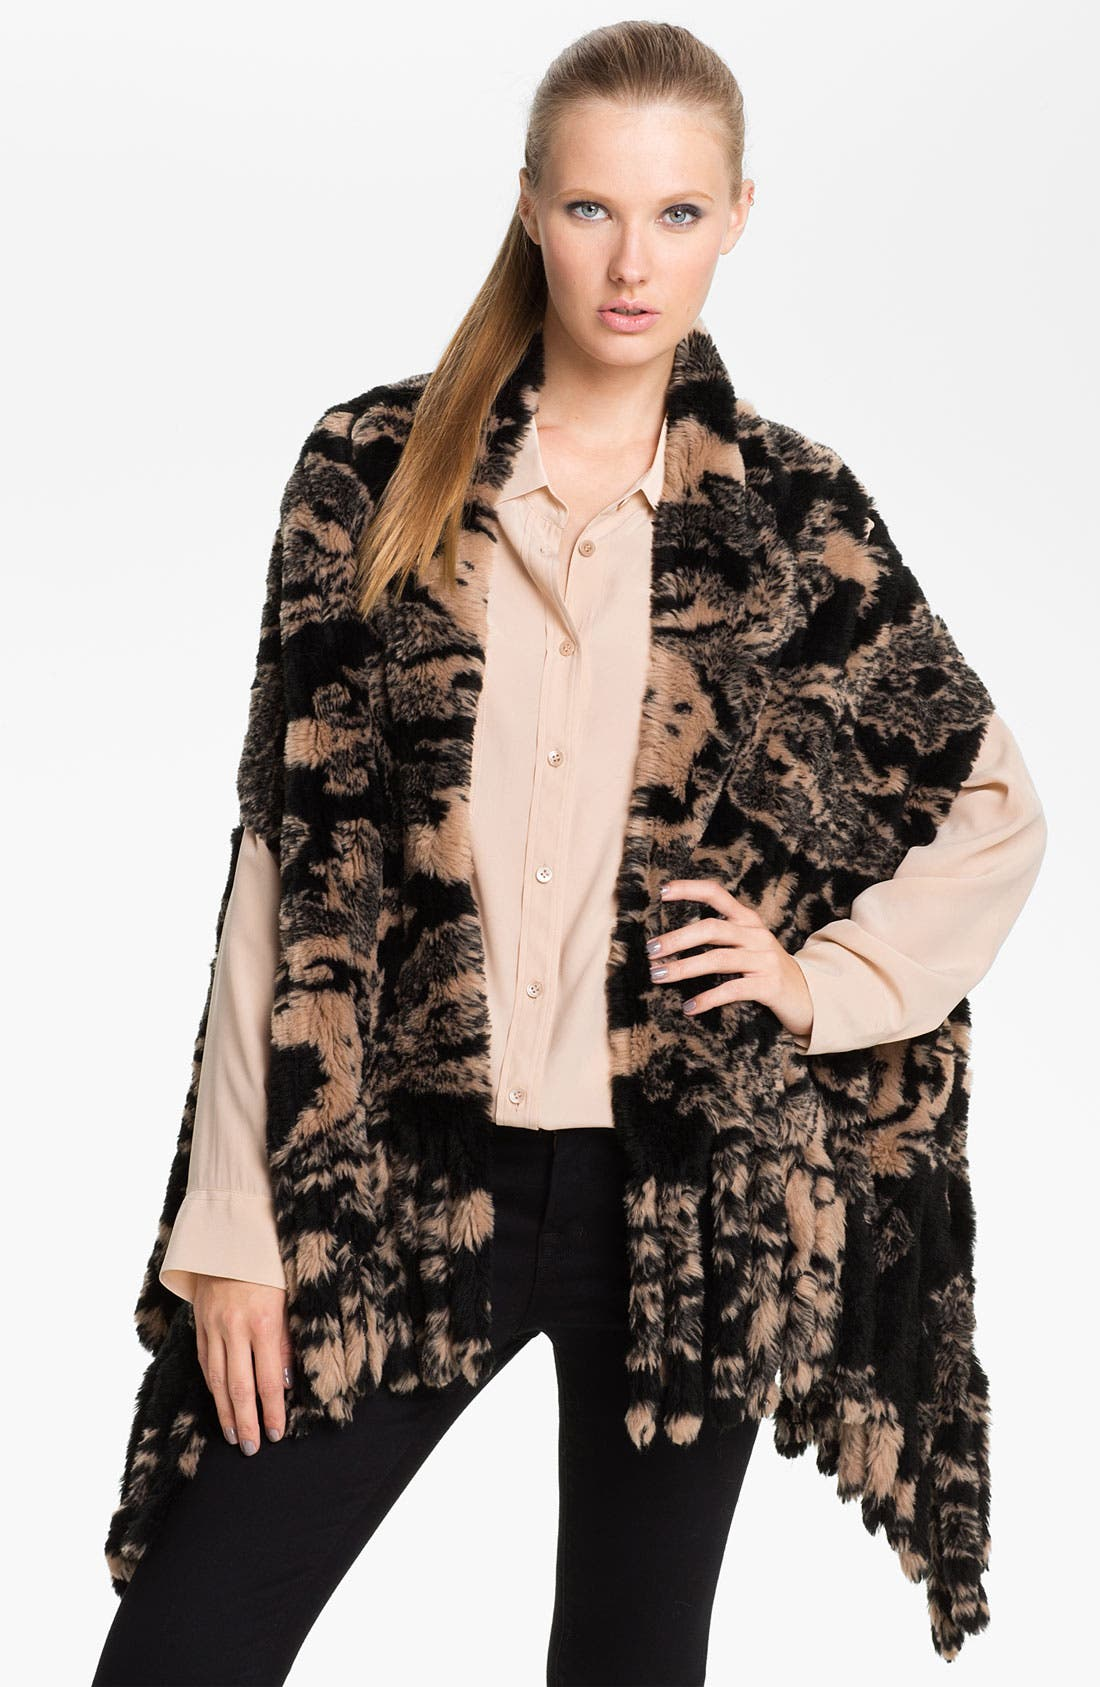 Alternate Image 1 Selected - Nordstrom 'Baroque' Faux Fur Vest